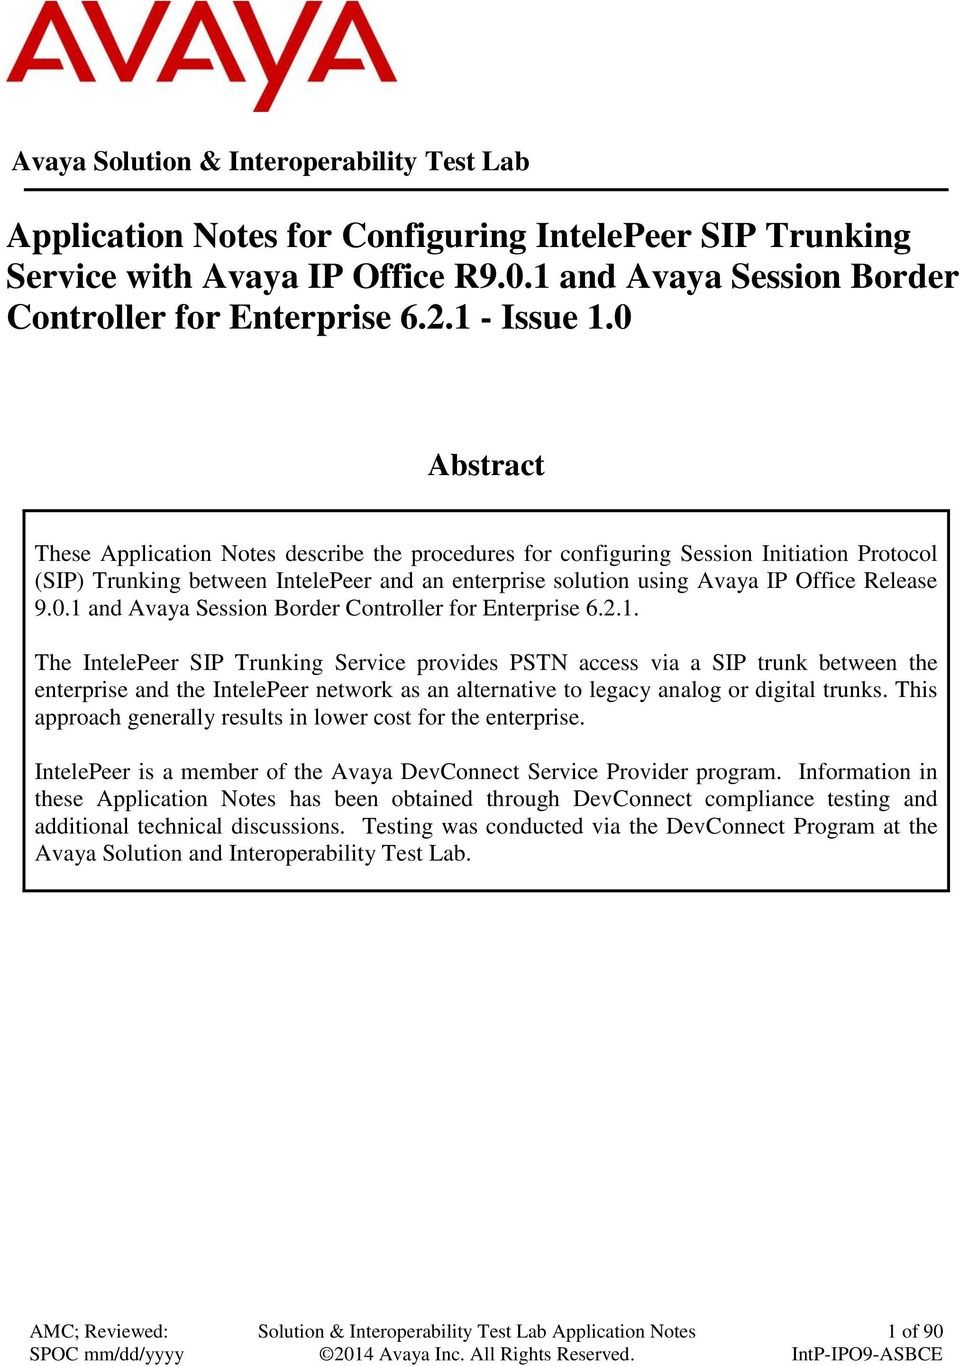 0 Abstract These Application Notes describe the procedures for configuring Session Initiation Protocol (SIP) Trunking between IntelePeer and an enterprise solution using Avaya IP Office Release 9.0.1 and Avaya Session Border Controller for Enterprise 6.